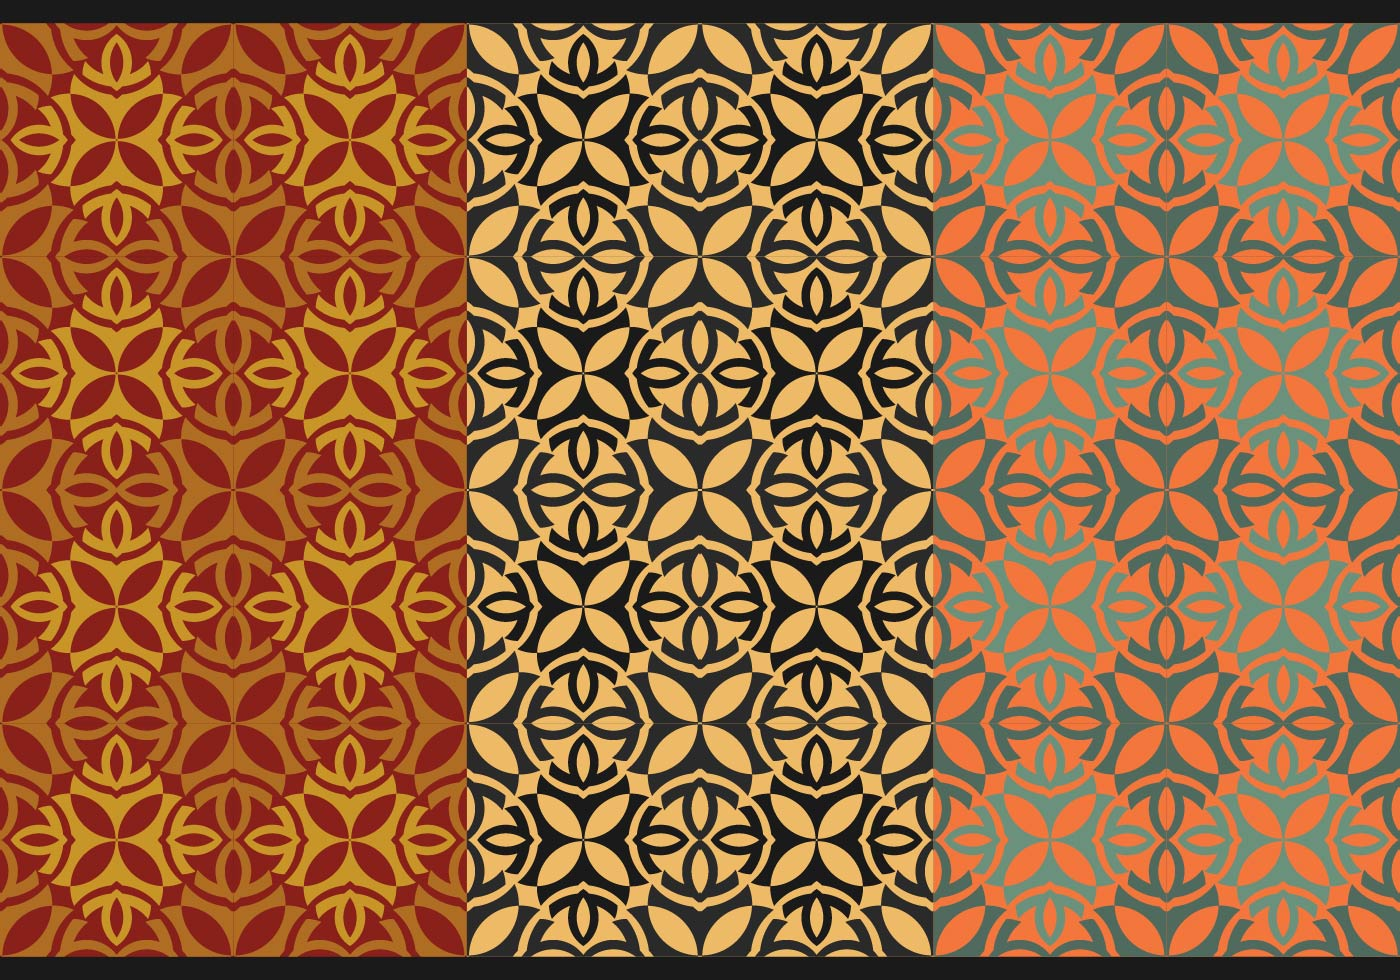 Free Thai Seamless Vector Patterns. Vol. I - Download Free Vector Art. Stock Graphics & Images